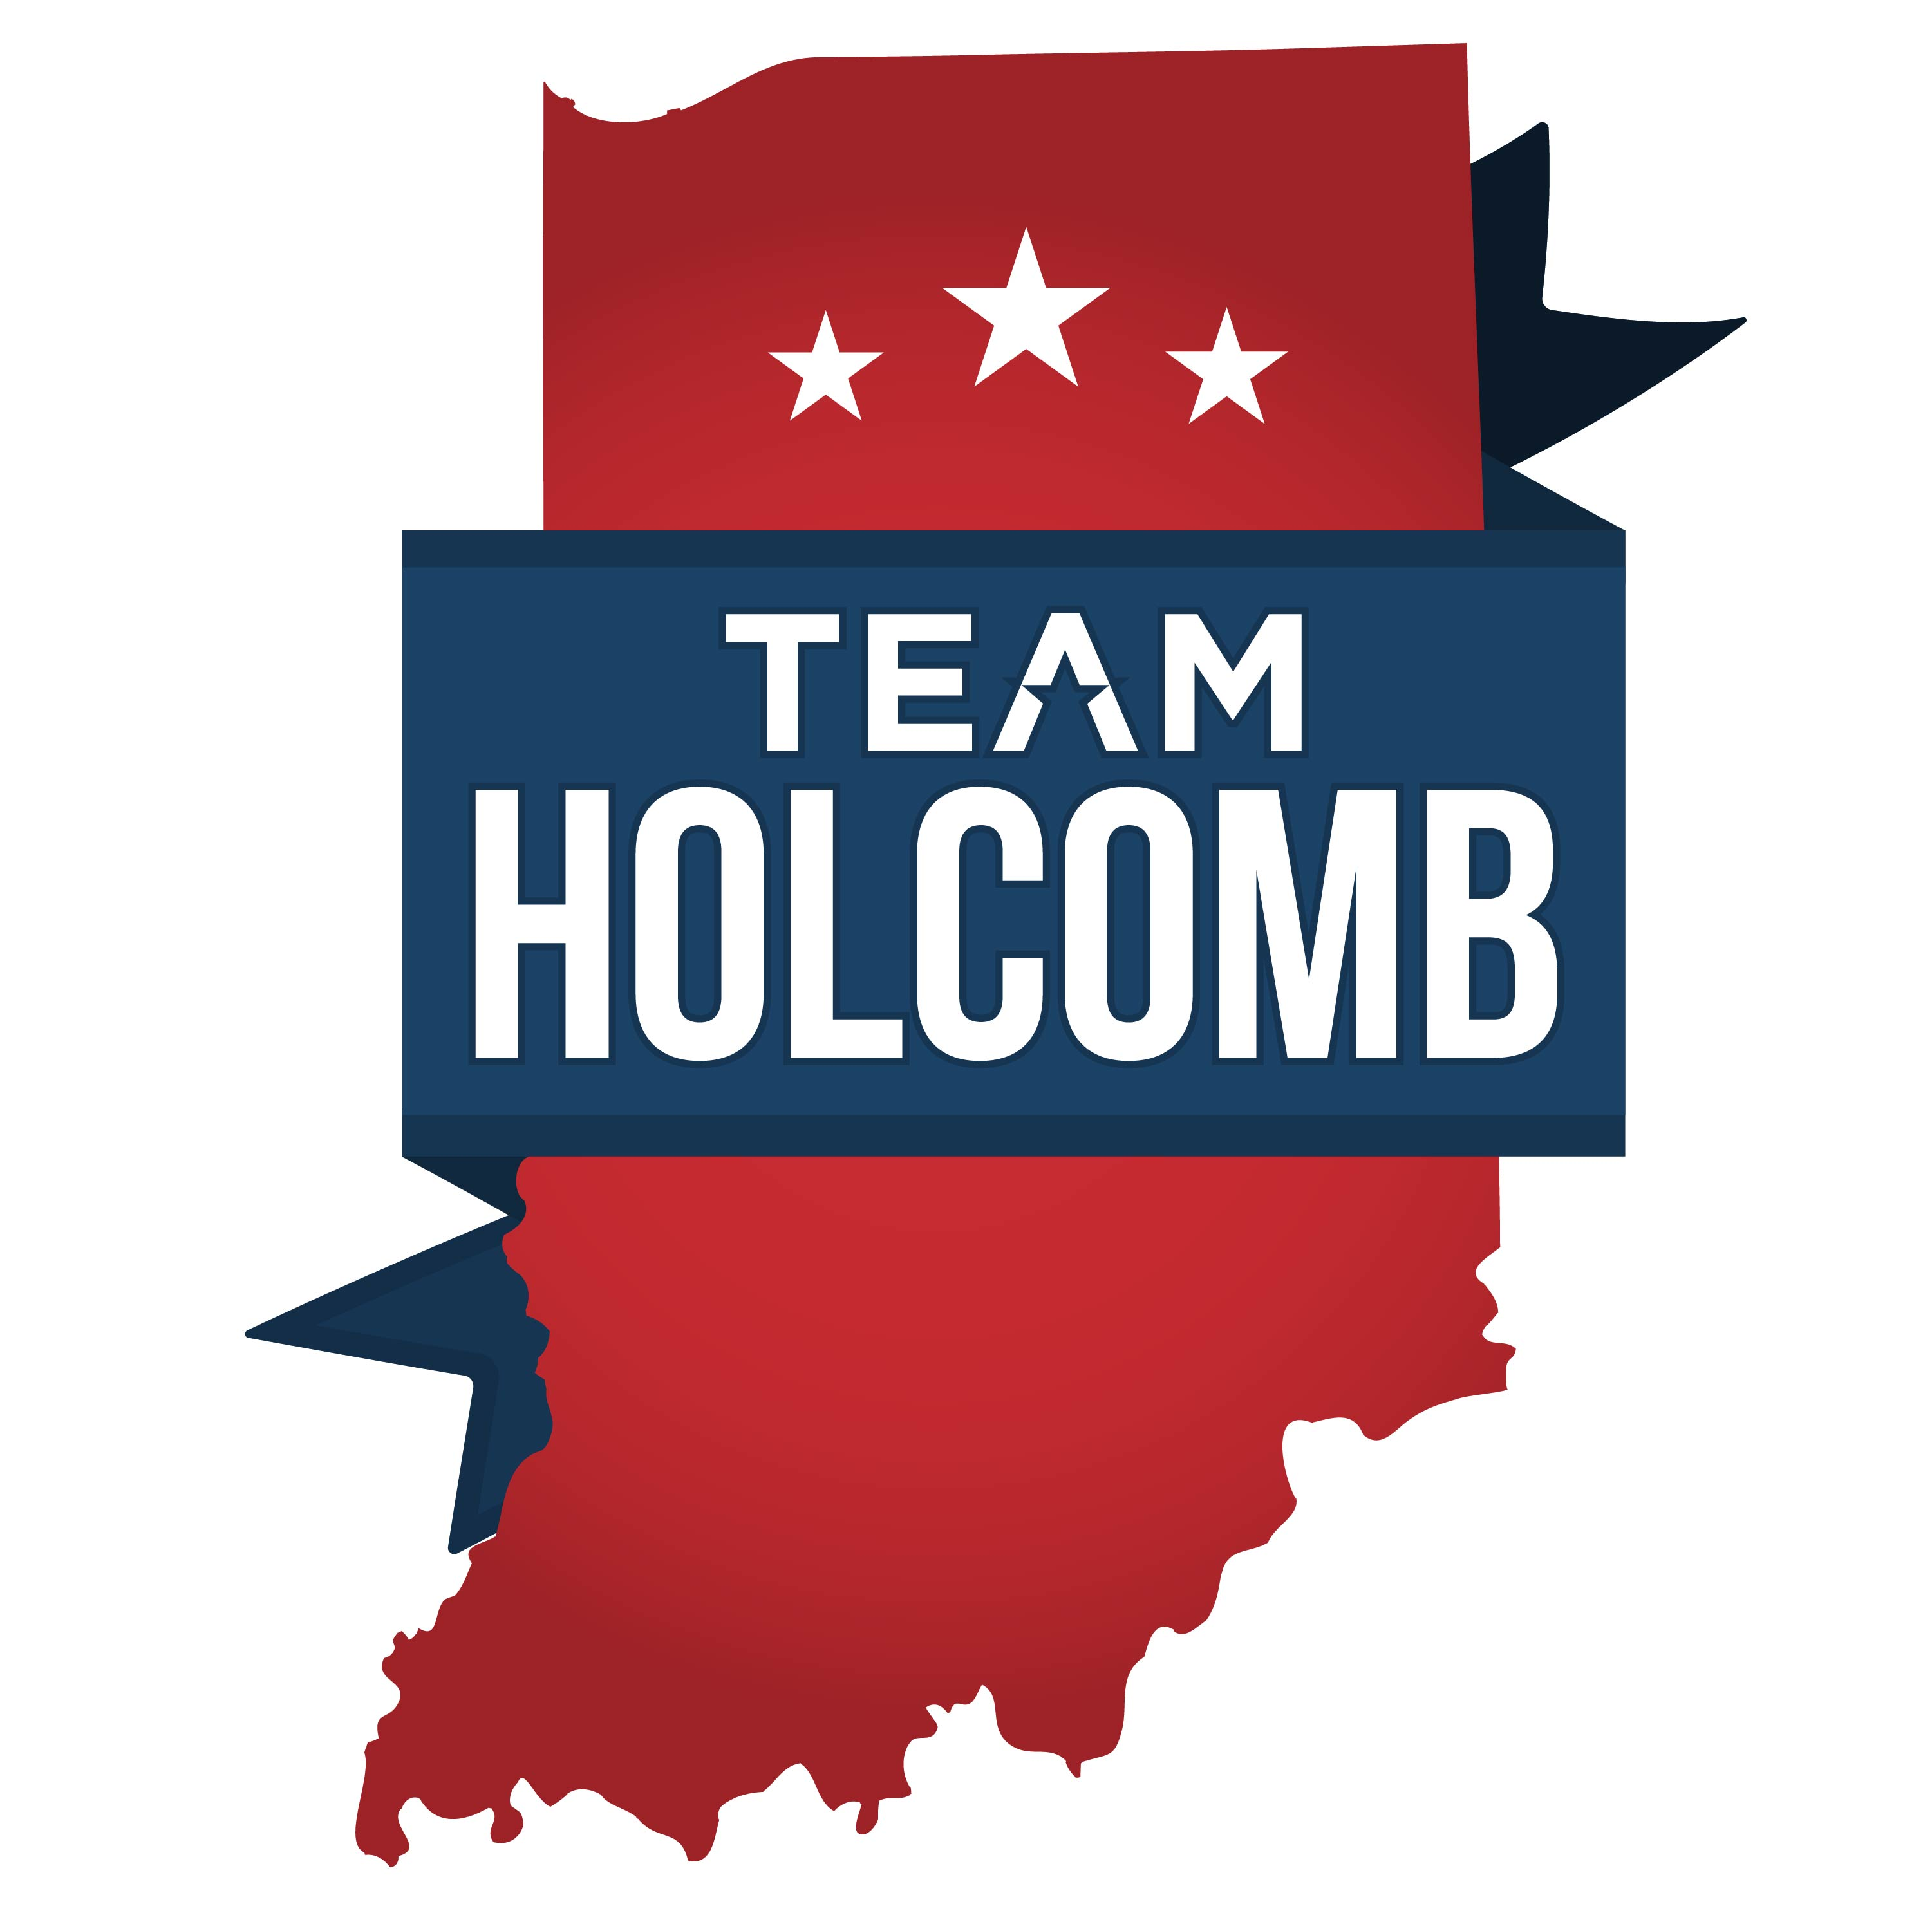 Team Holcomb